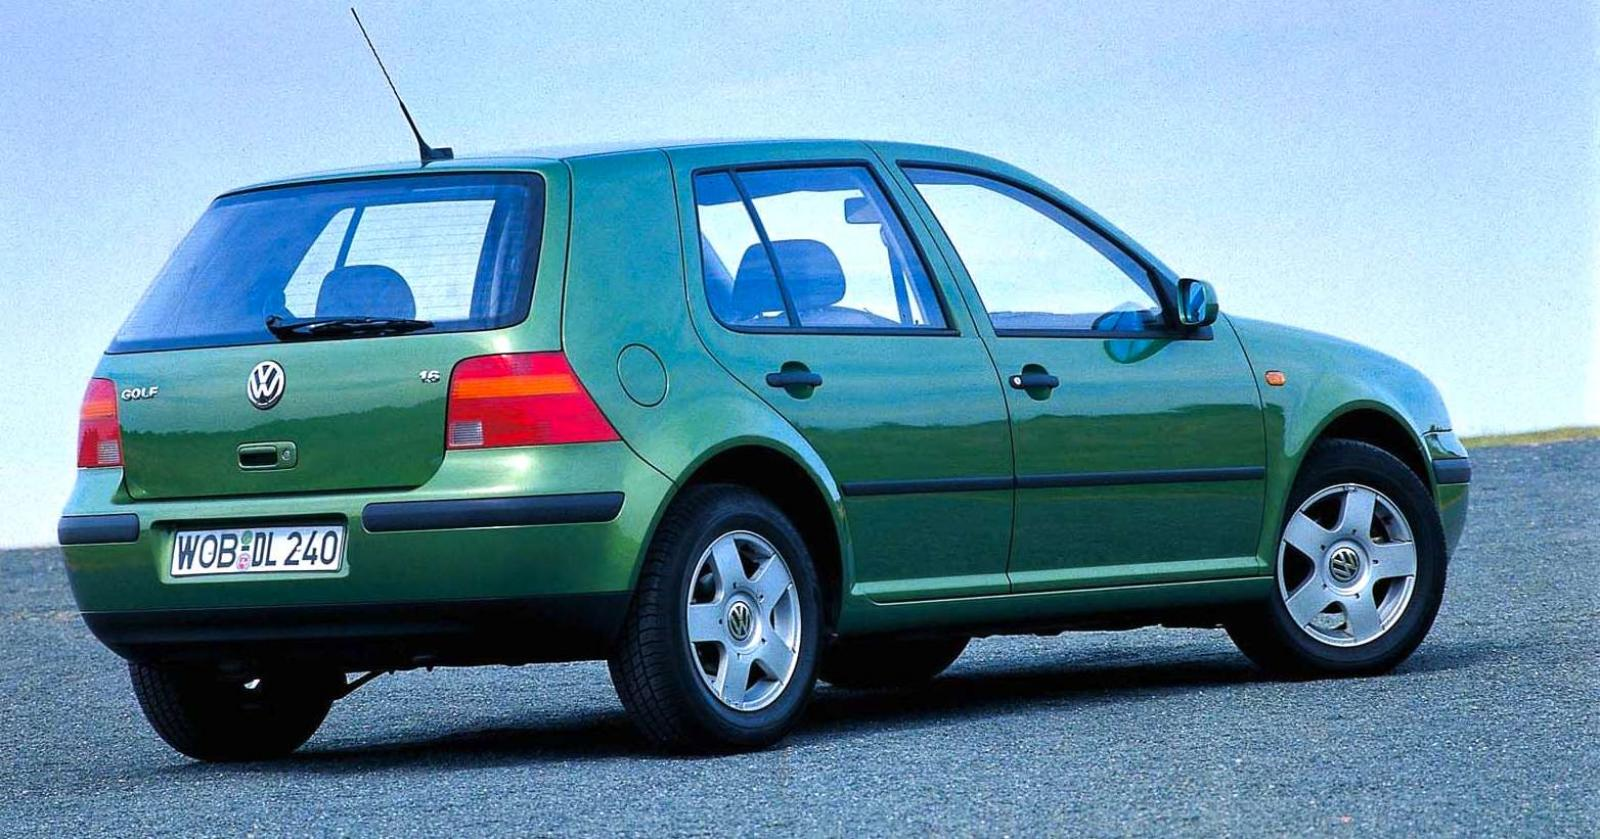 2001 volkswagen golf information and photos zombiedrive. Black Bedroom Furniture Sets. Home Design Ideas